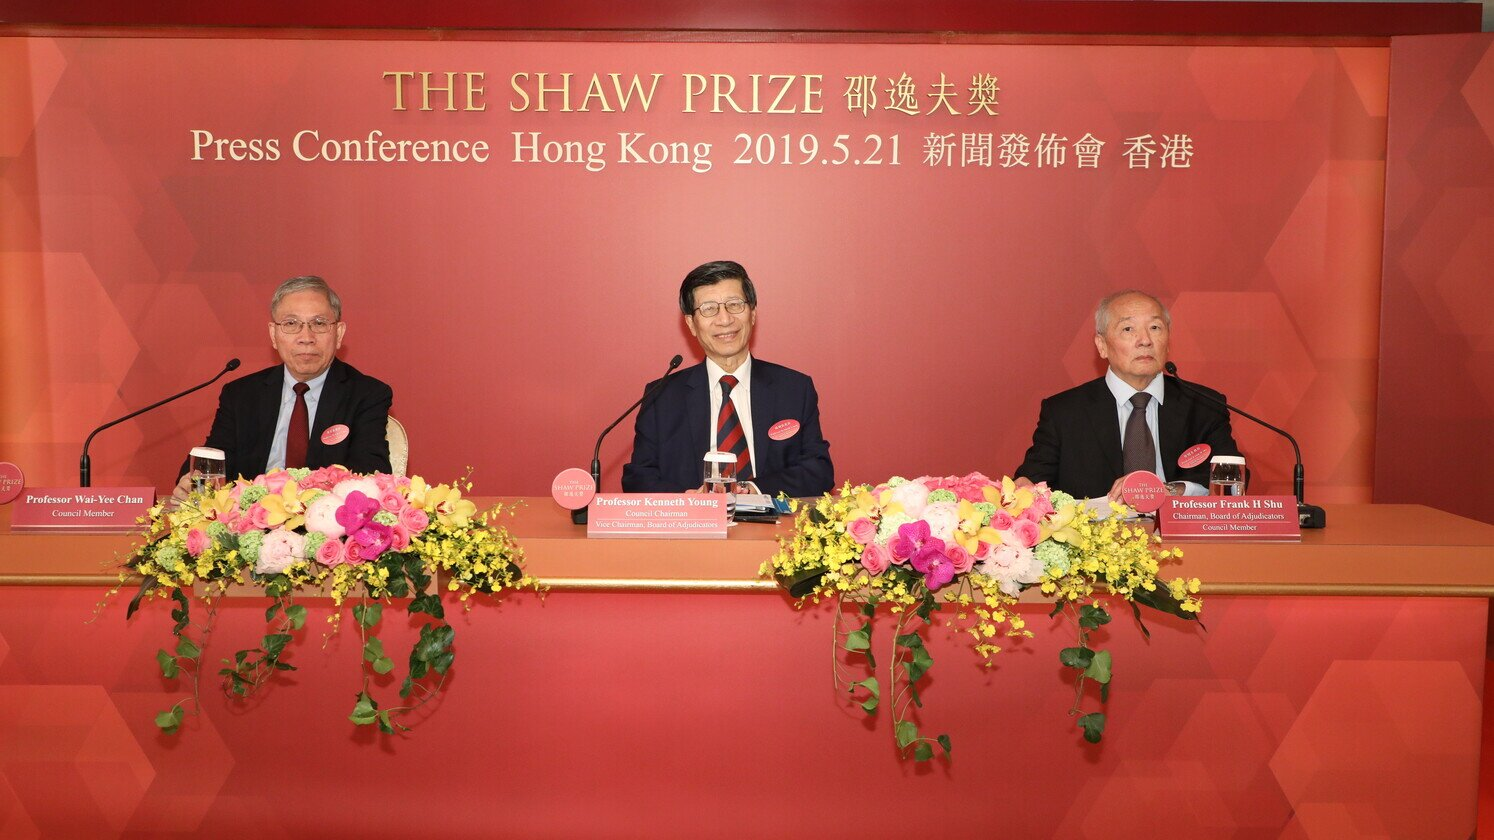 Announcement of The Shaw Laureates Press Conference 2019